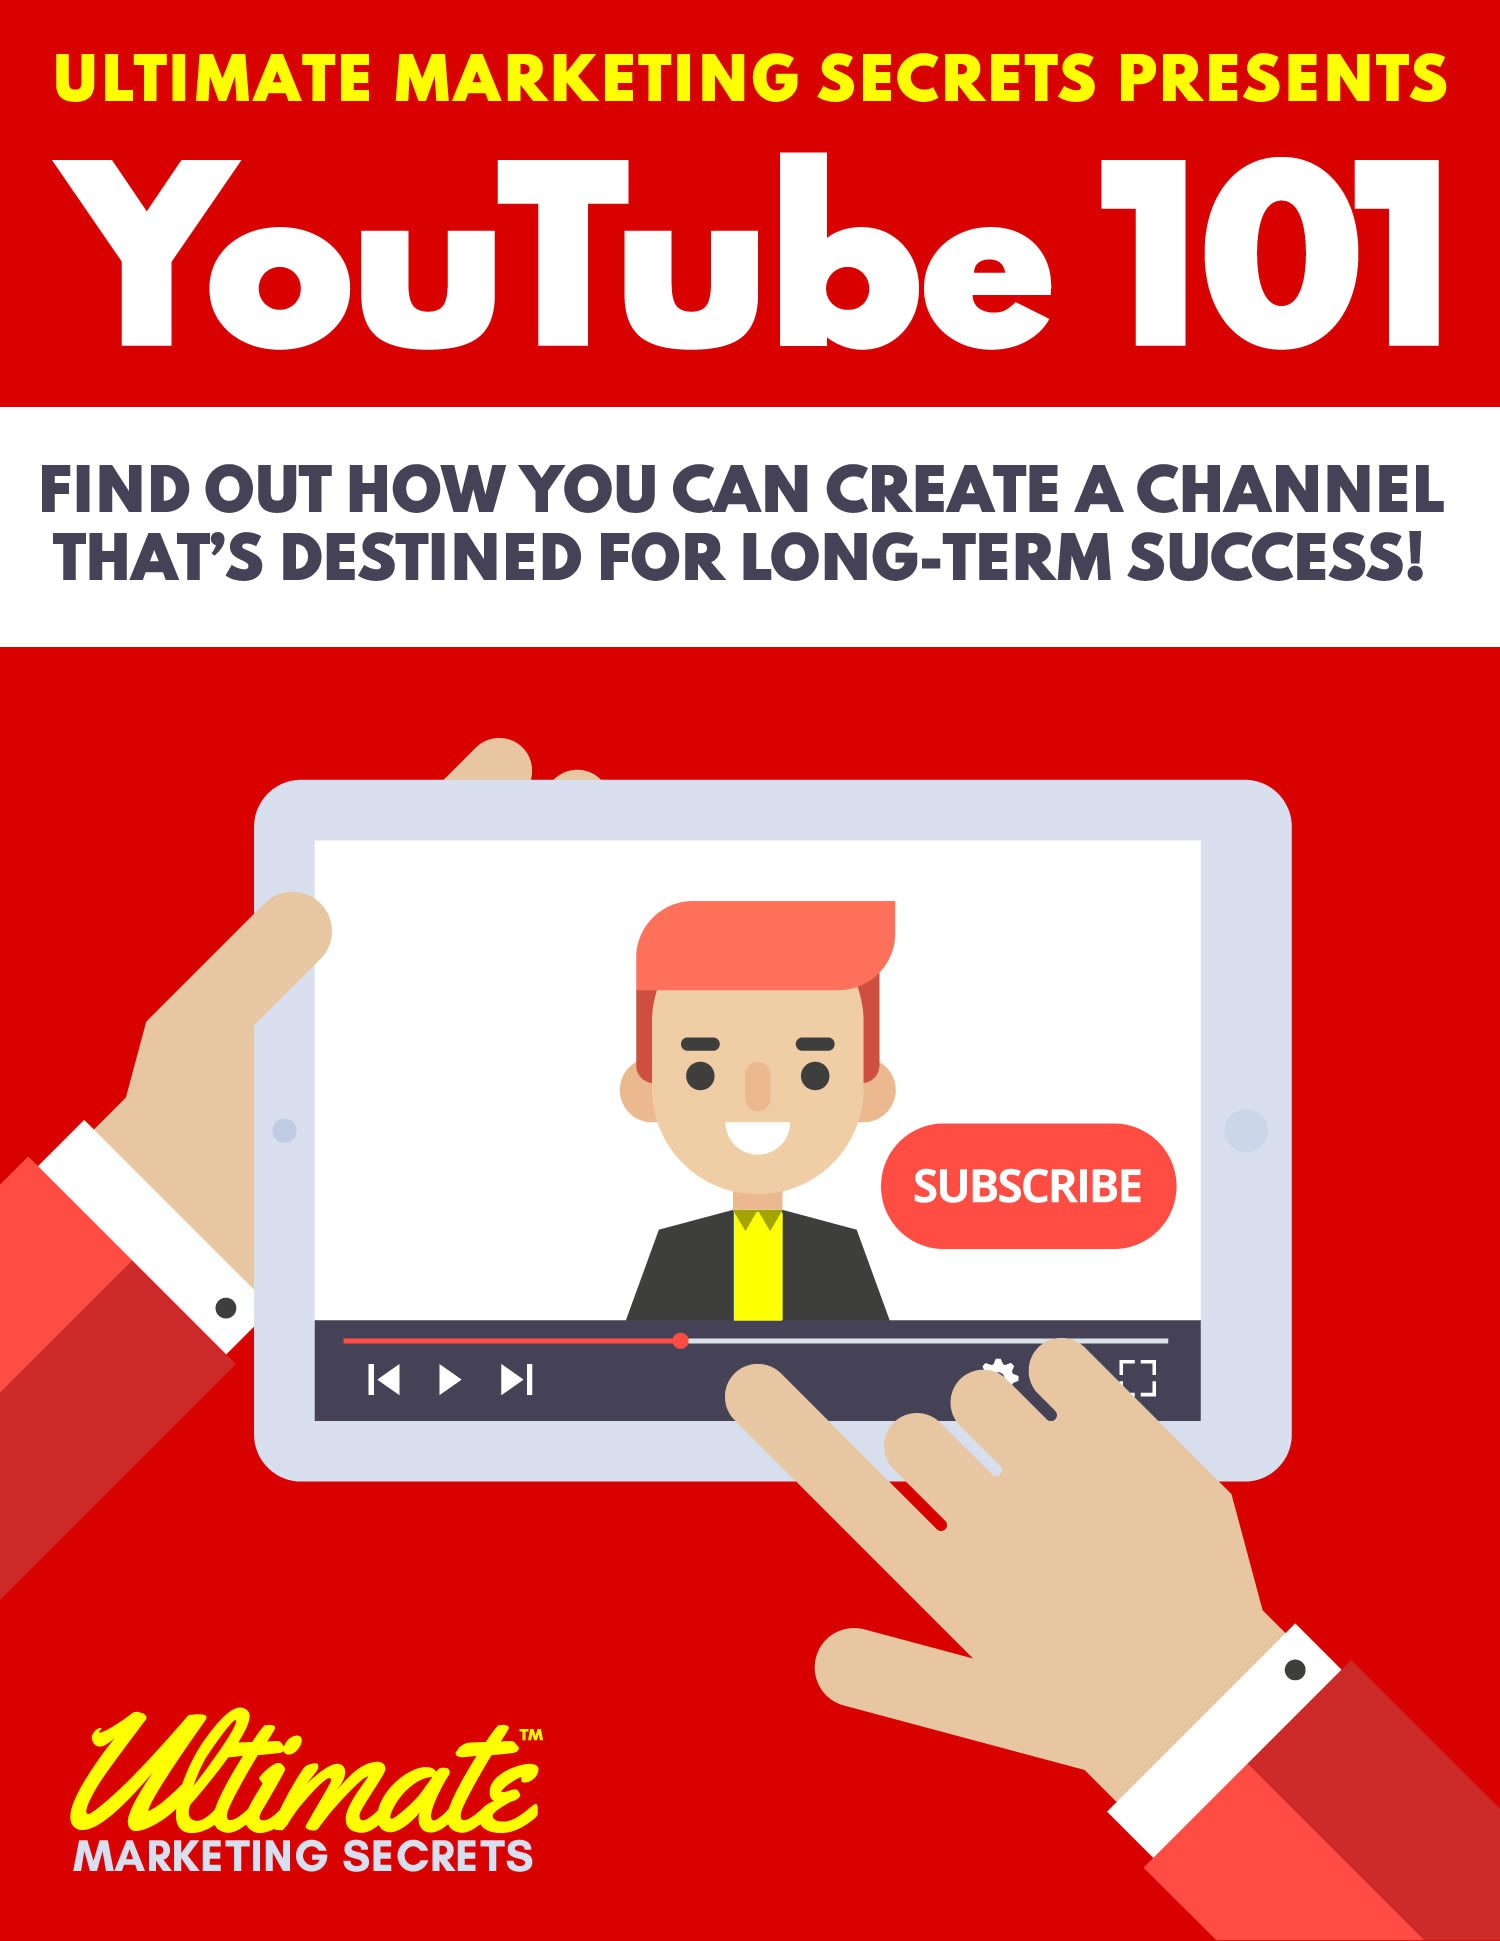 YouTube 101 Cover